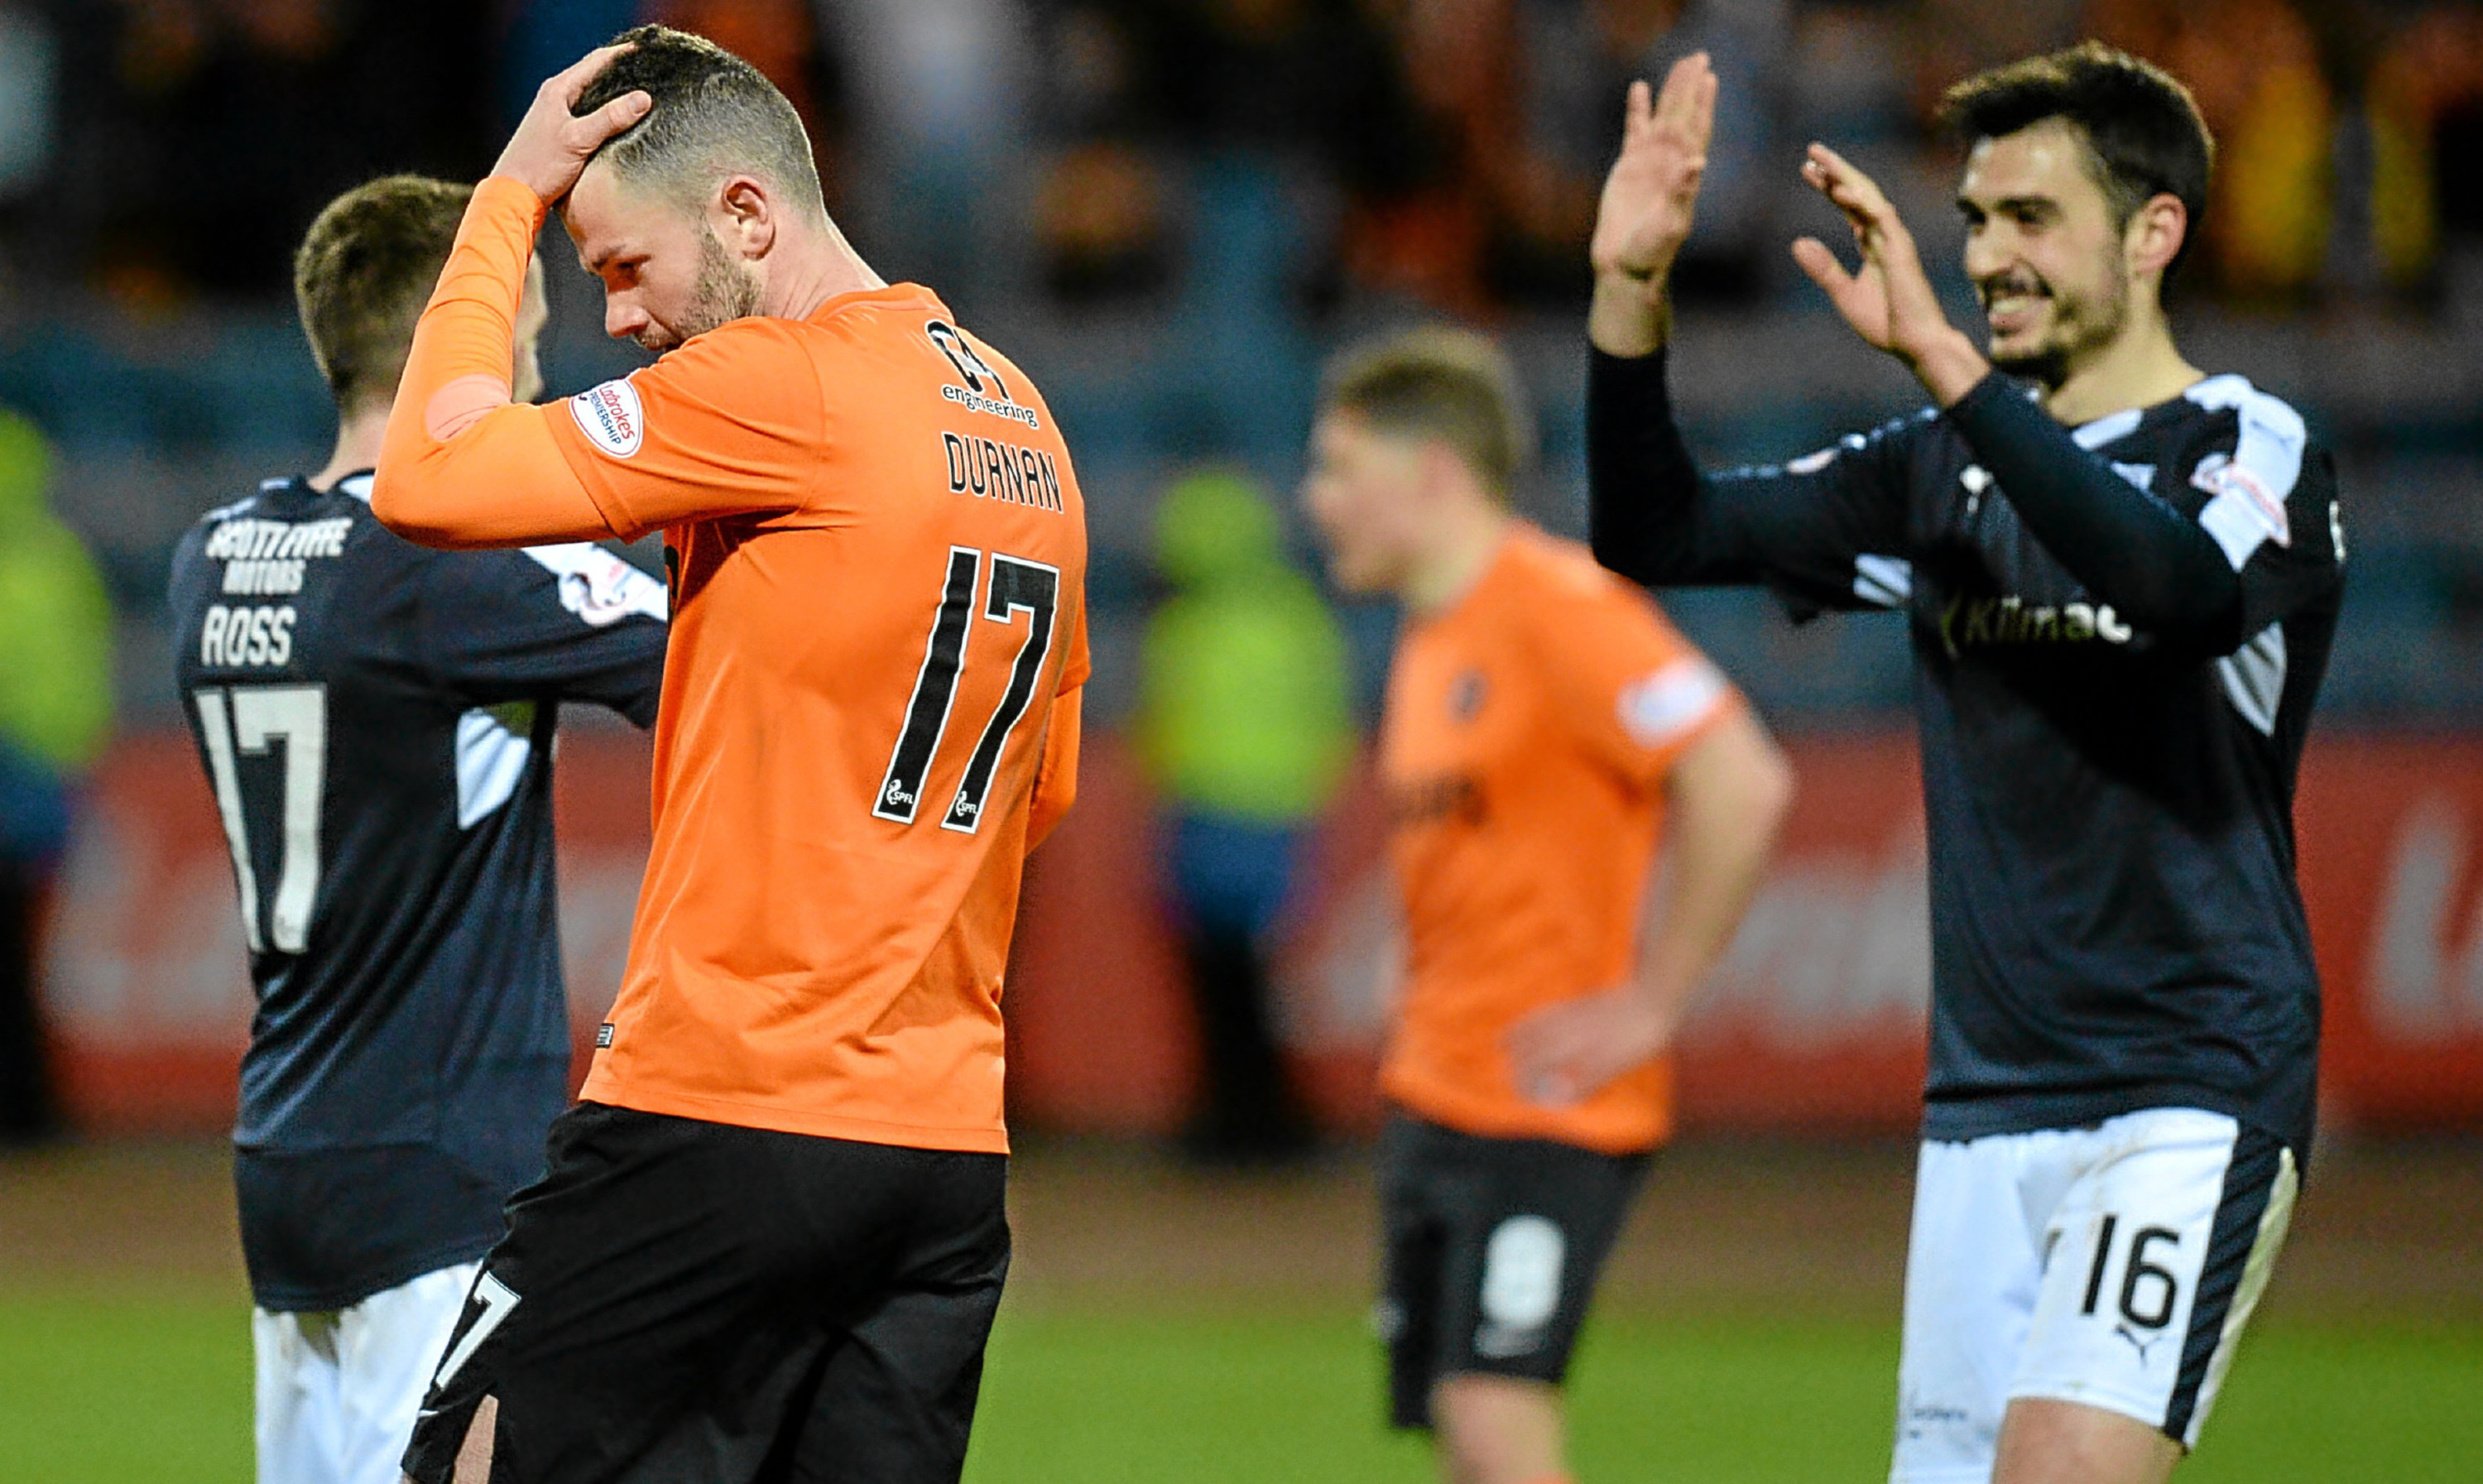 Dejection for Dundee United's Mark Durnan contrasts with celebration for Dundee's players.